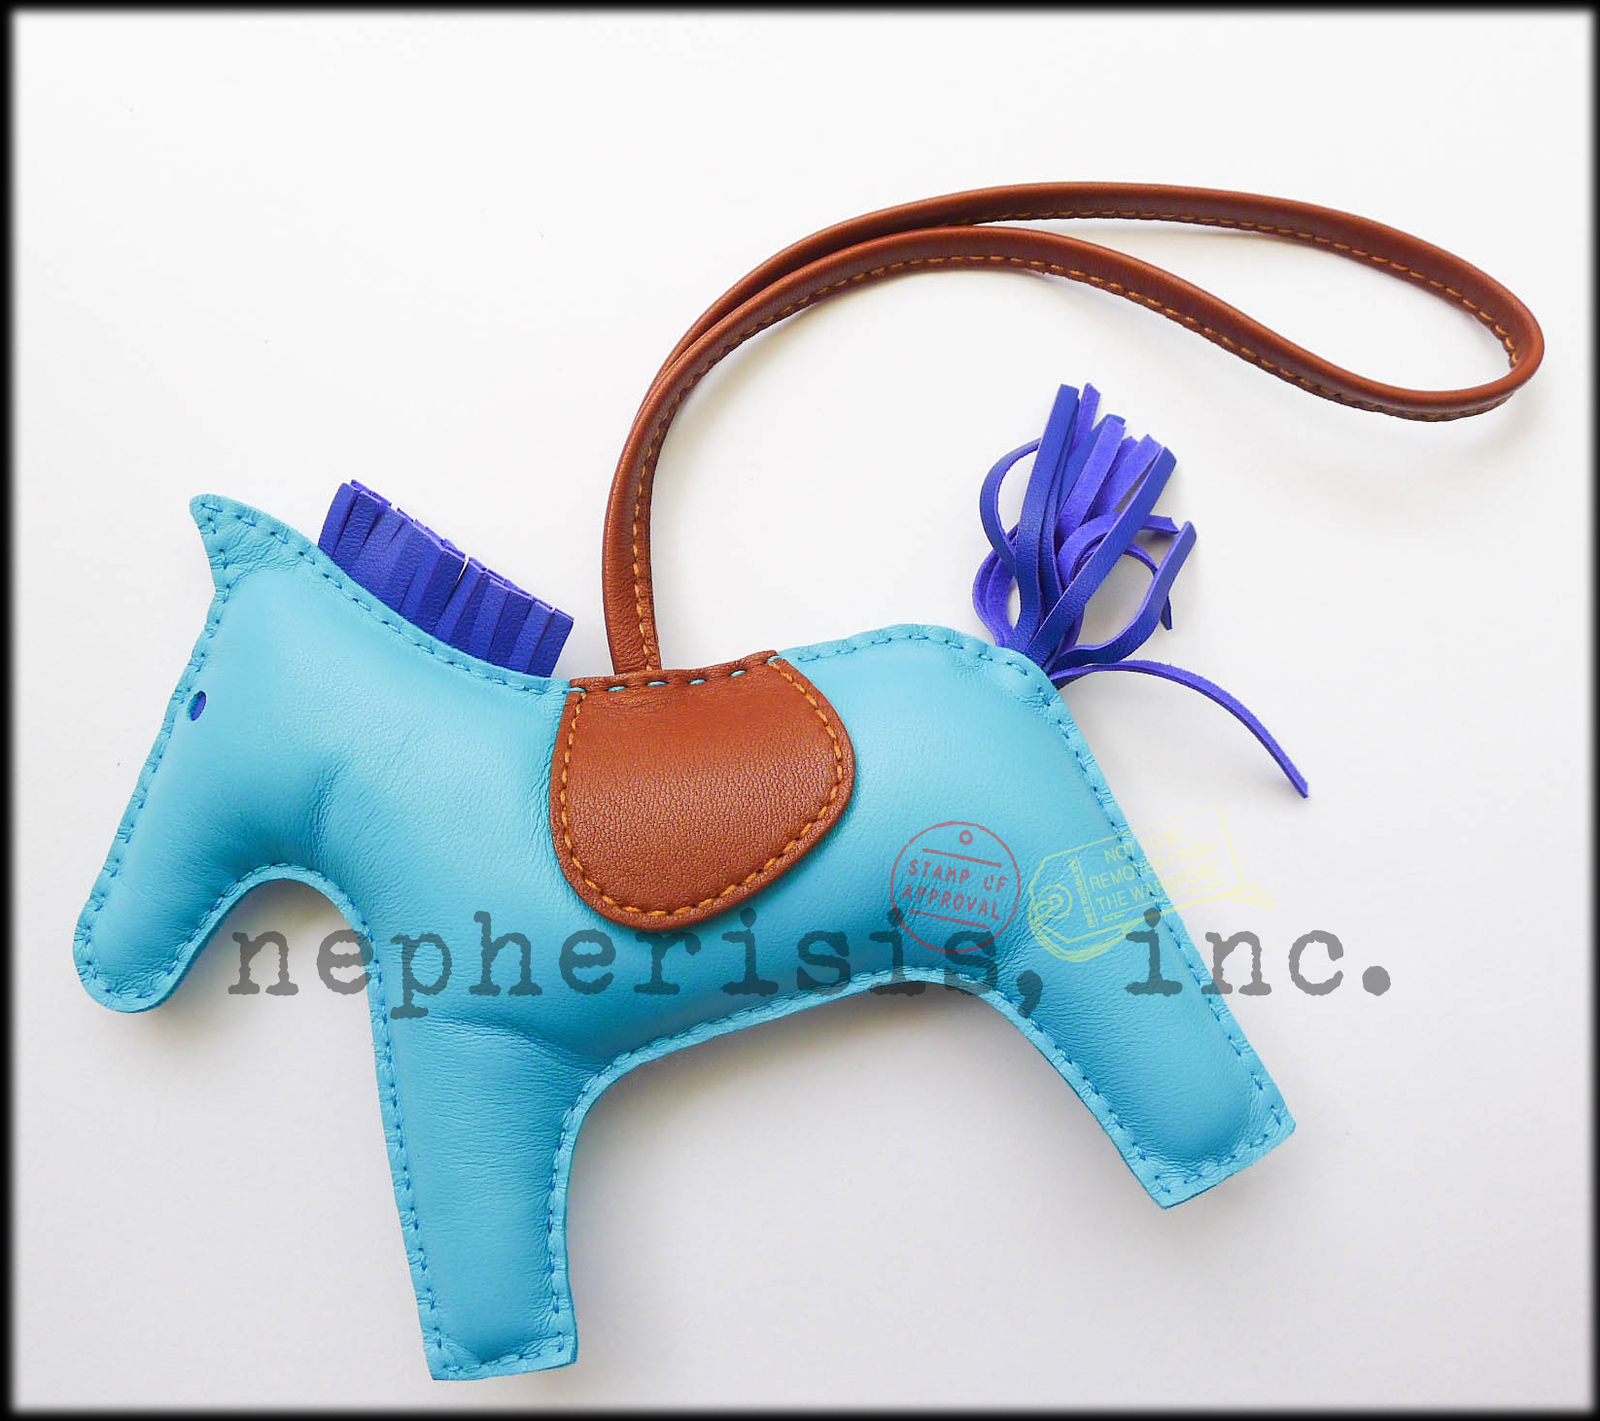 0f1b509a030 ... order auth nwb hermes grigri rodeo horse gm large leather bag charm  blue azteque 061a6 4b809